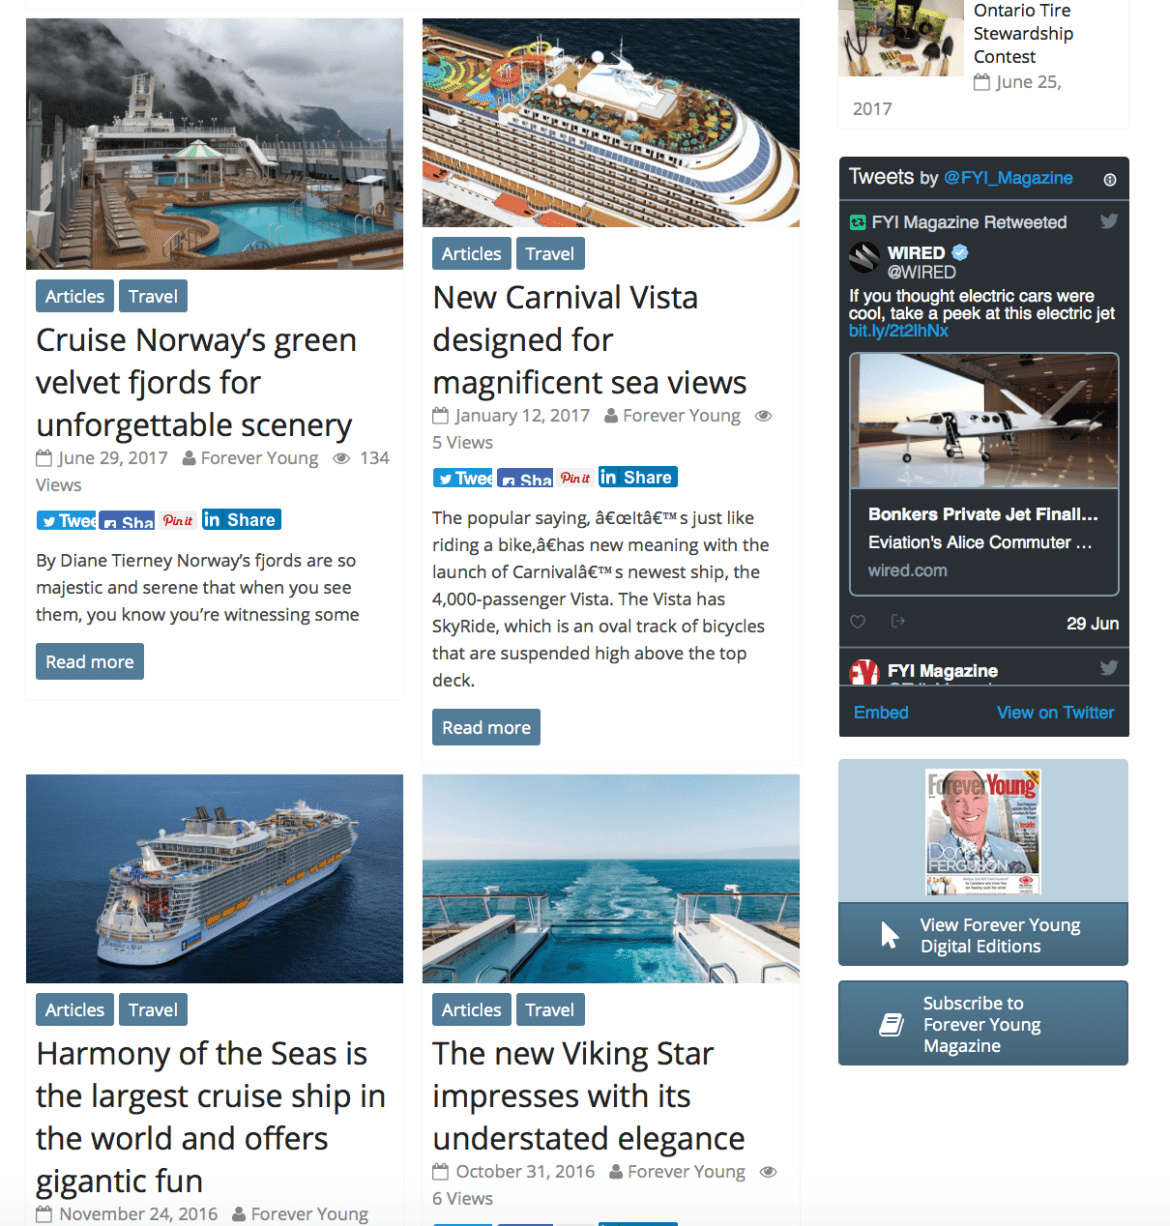 Cruiseguru's cruise ship reviews in Forever Young News